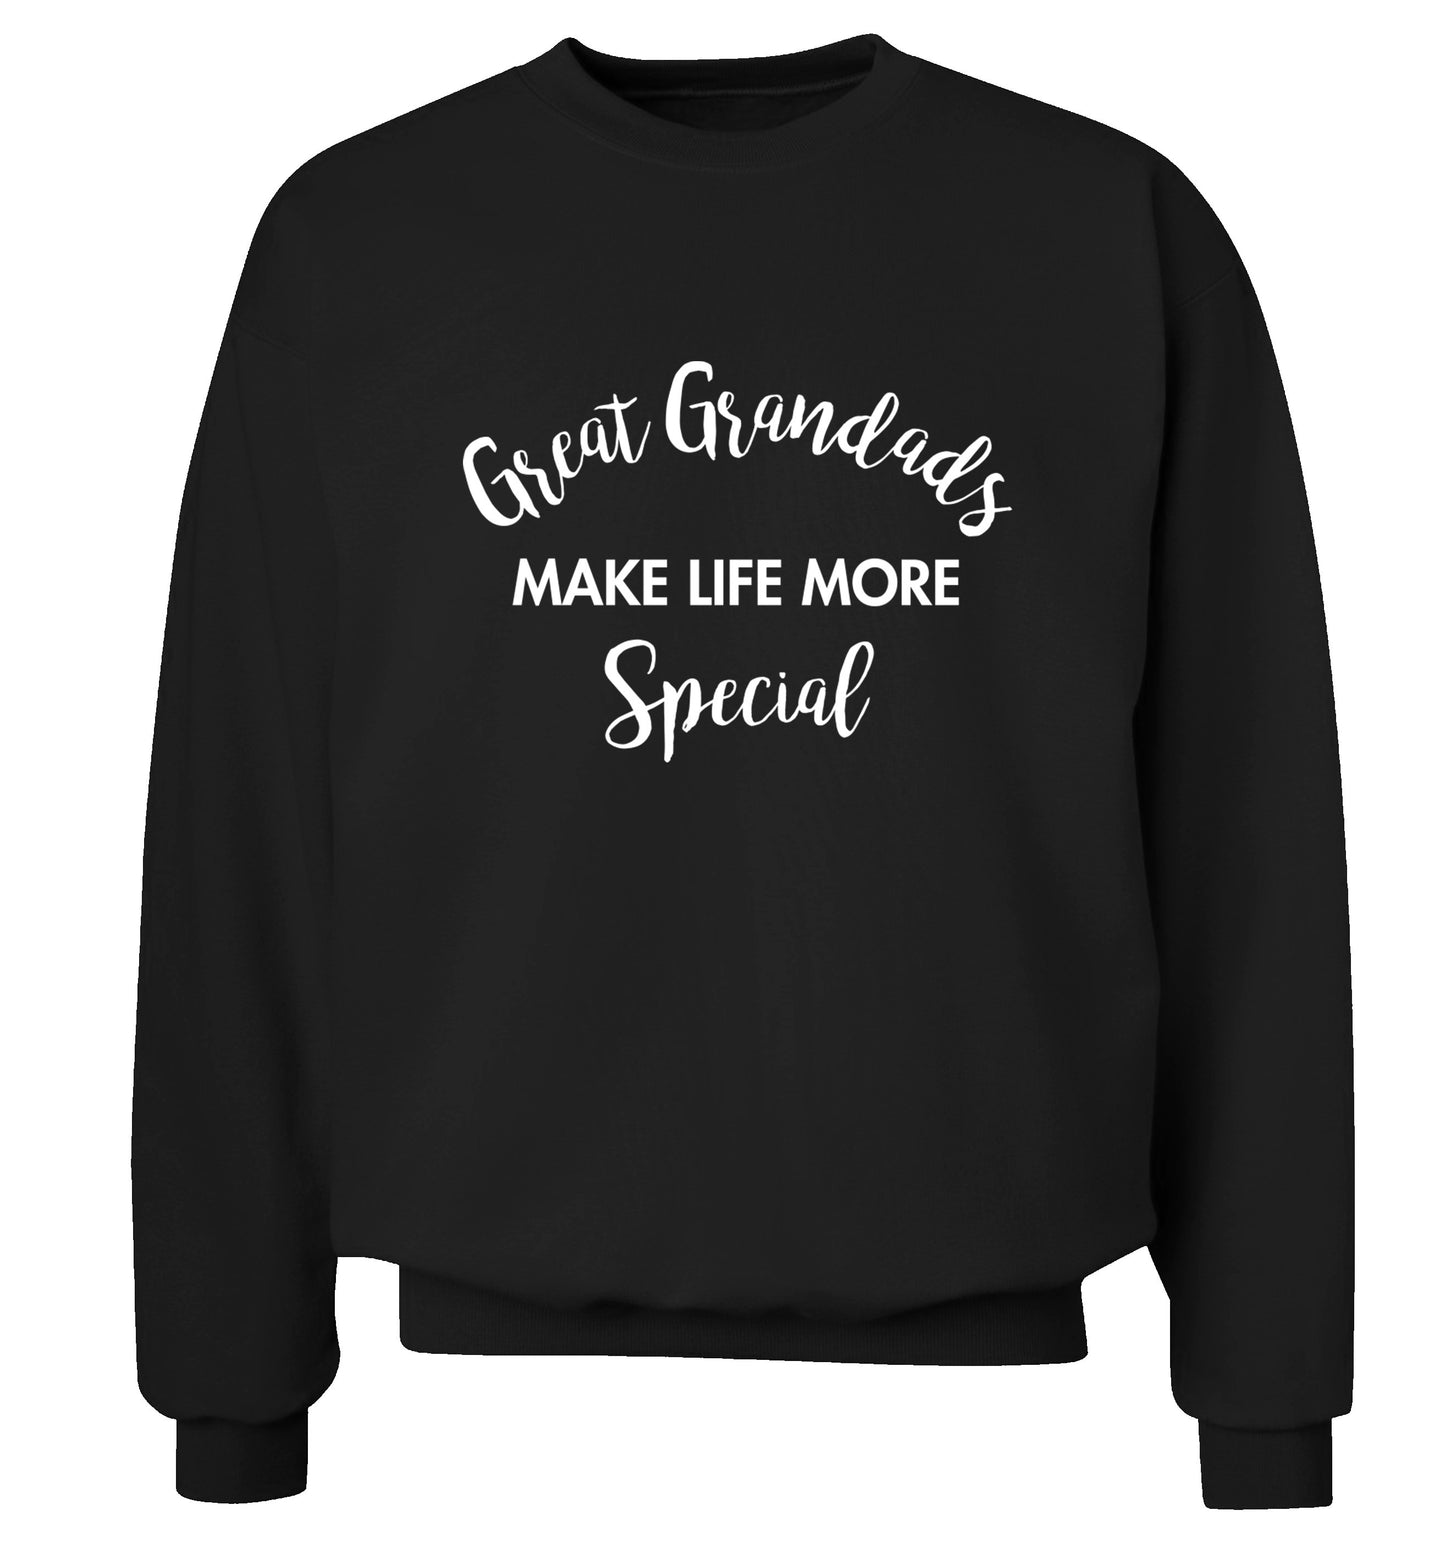 Great Grandads make life more special Adult's unisex black Sweater 2XL